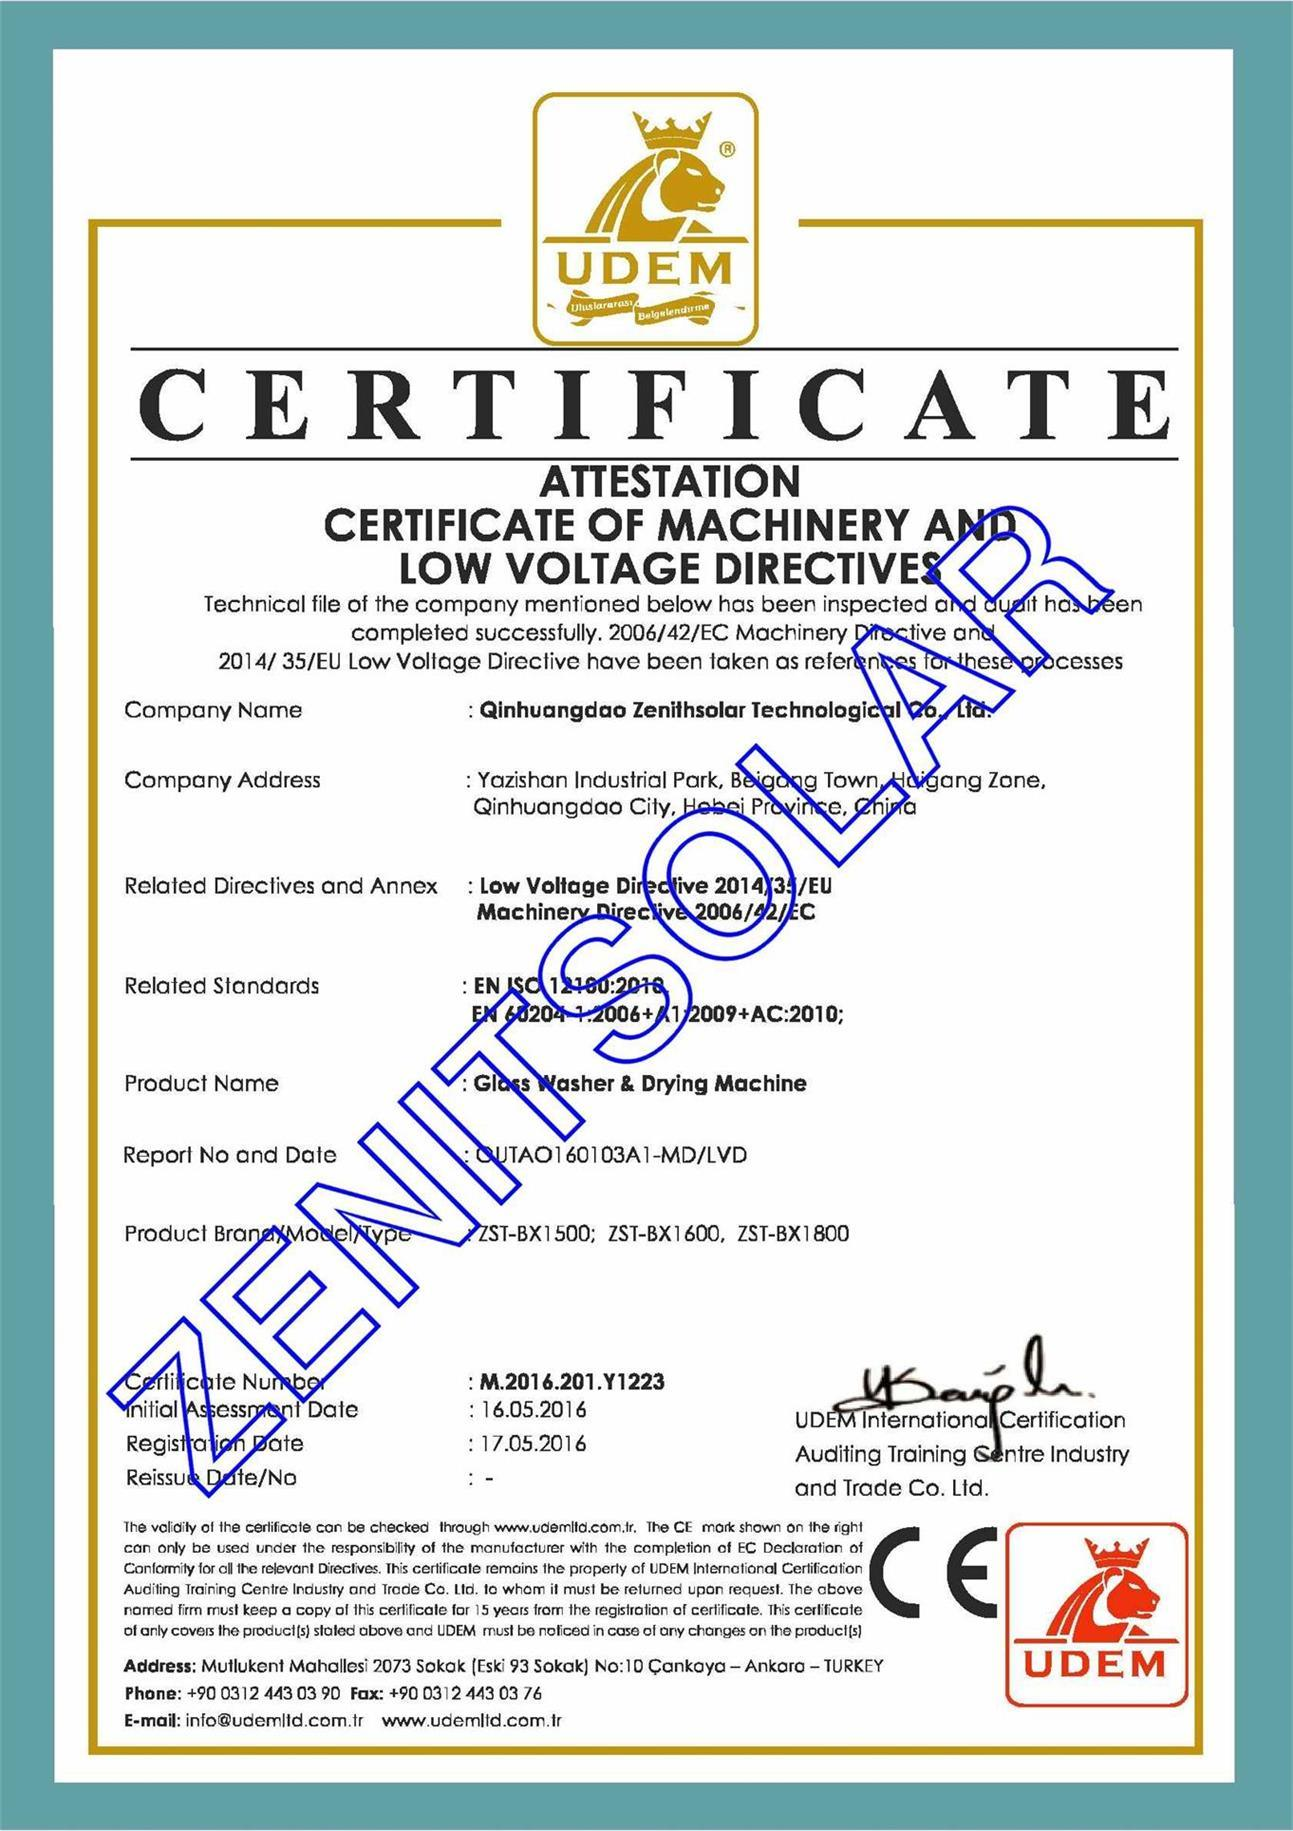 GLASS WASHER MACHINE CERTIFICATE